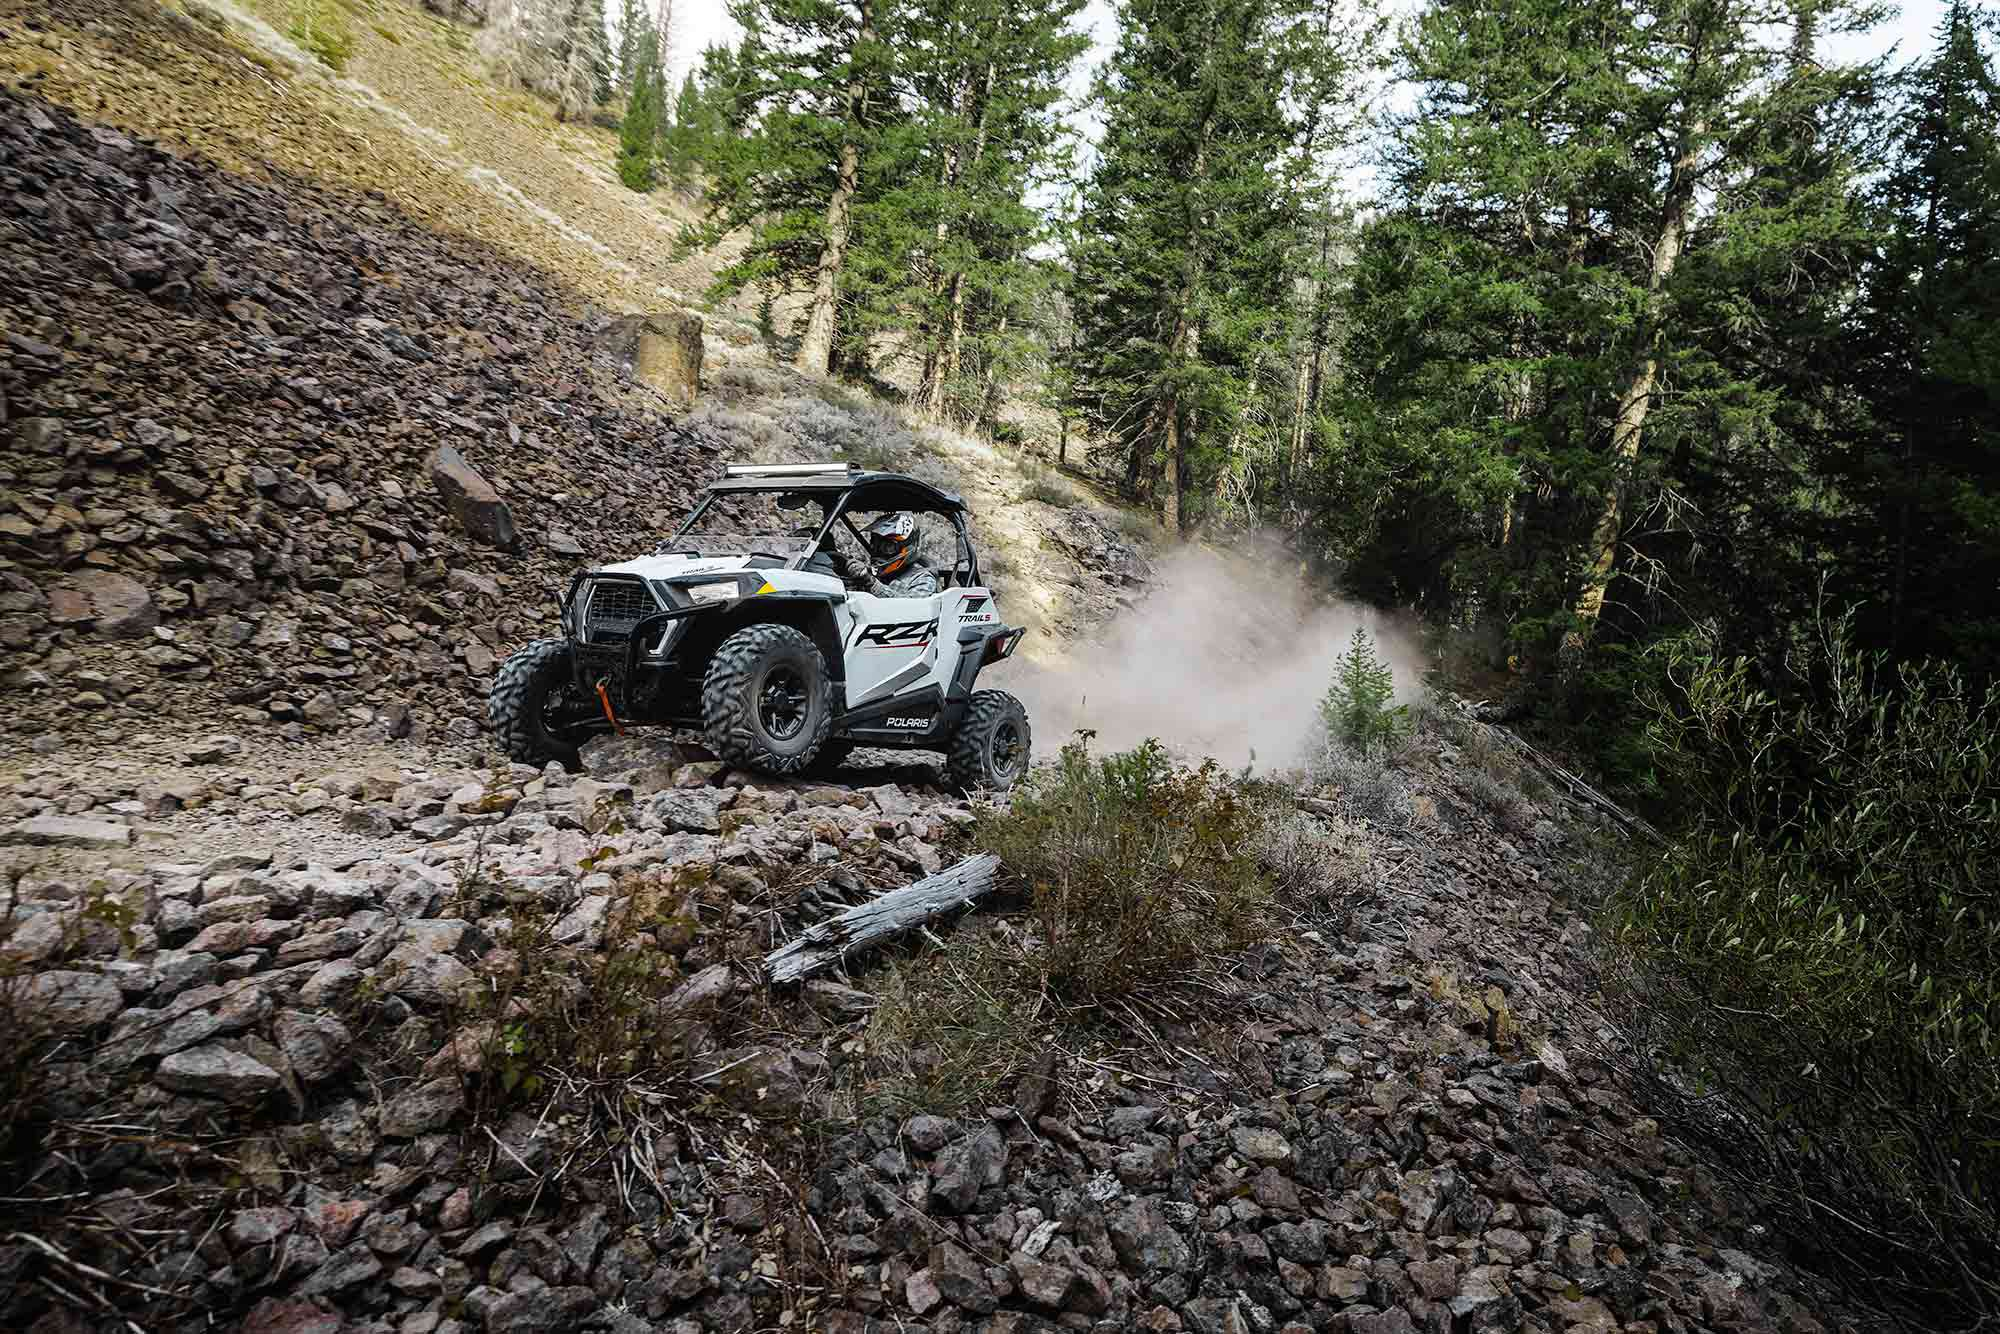 With a 60-inch track and models ranging from bare bones to fully decked out, the 2022 Polaris RZR Trail S has something for everyone.